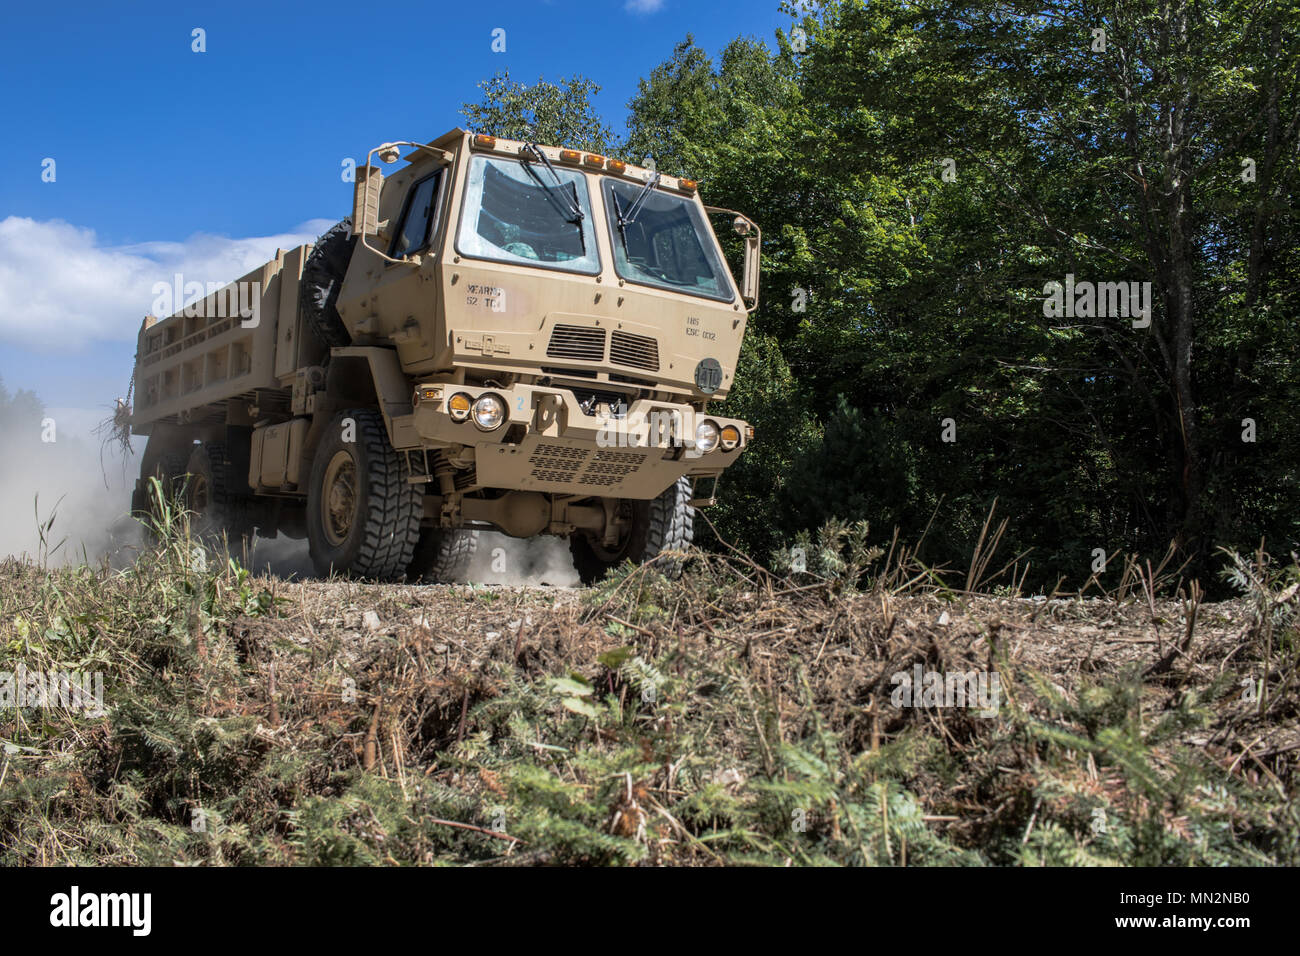 d9df1ce2308 Soldiers from the 185th Engineer Support Company of the Maine Army National  Guard drive their Light Medium Tactical Vehicle in a dump truck variant to  their ...